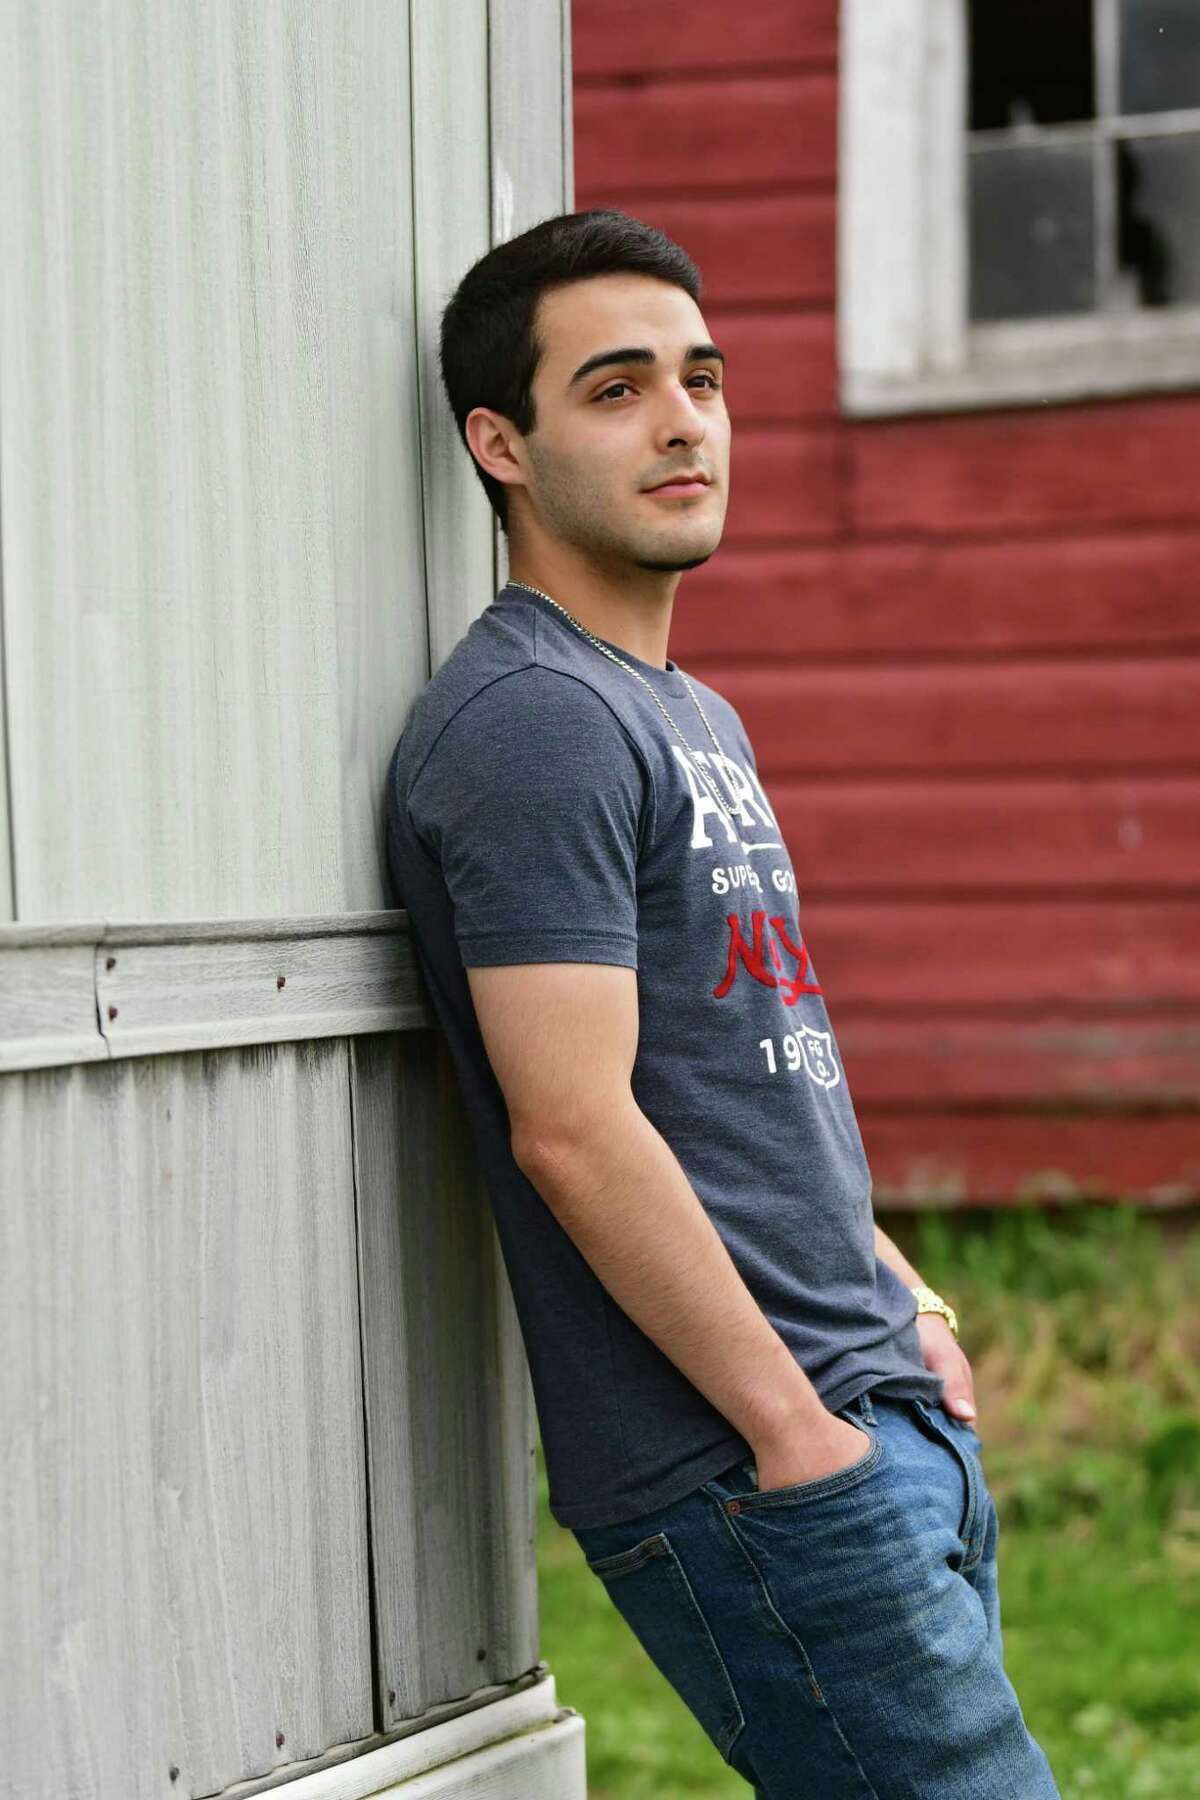 Jax stands outside his home on Monday, June 10, 2019 in Saratoga County. The Saratoga Immigration Coalition is launching a new program for assisting DACA and first-generation students in obtaining the counseling and financial support they need to apply for and/or stay in college. (Lori Van Buren/Times Union)